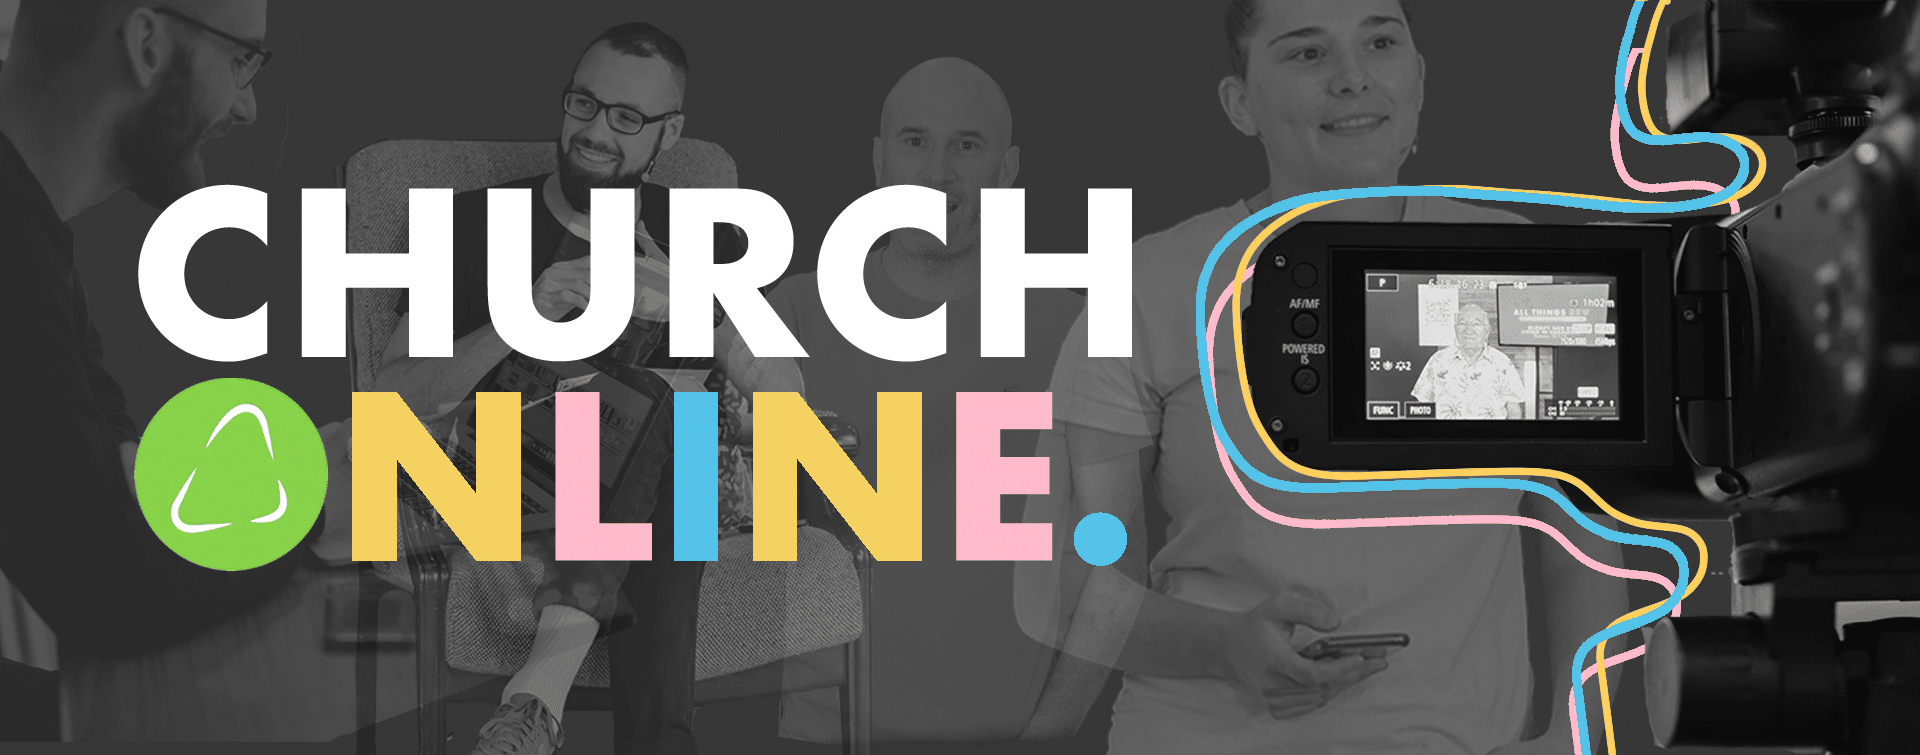 church online banner - HOME